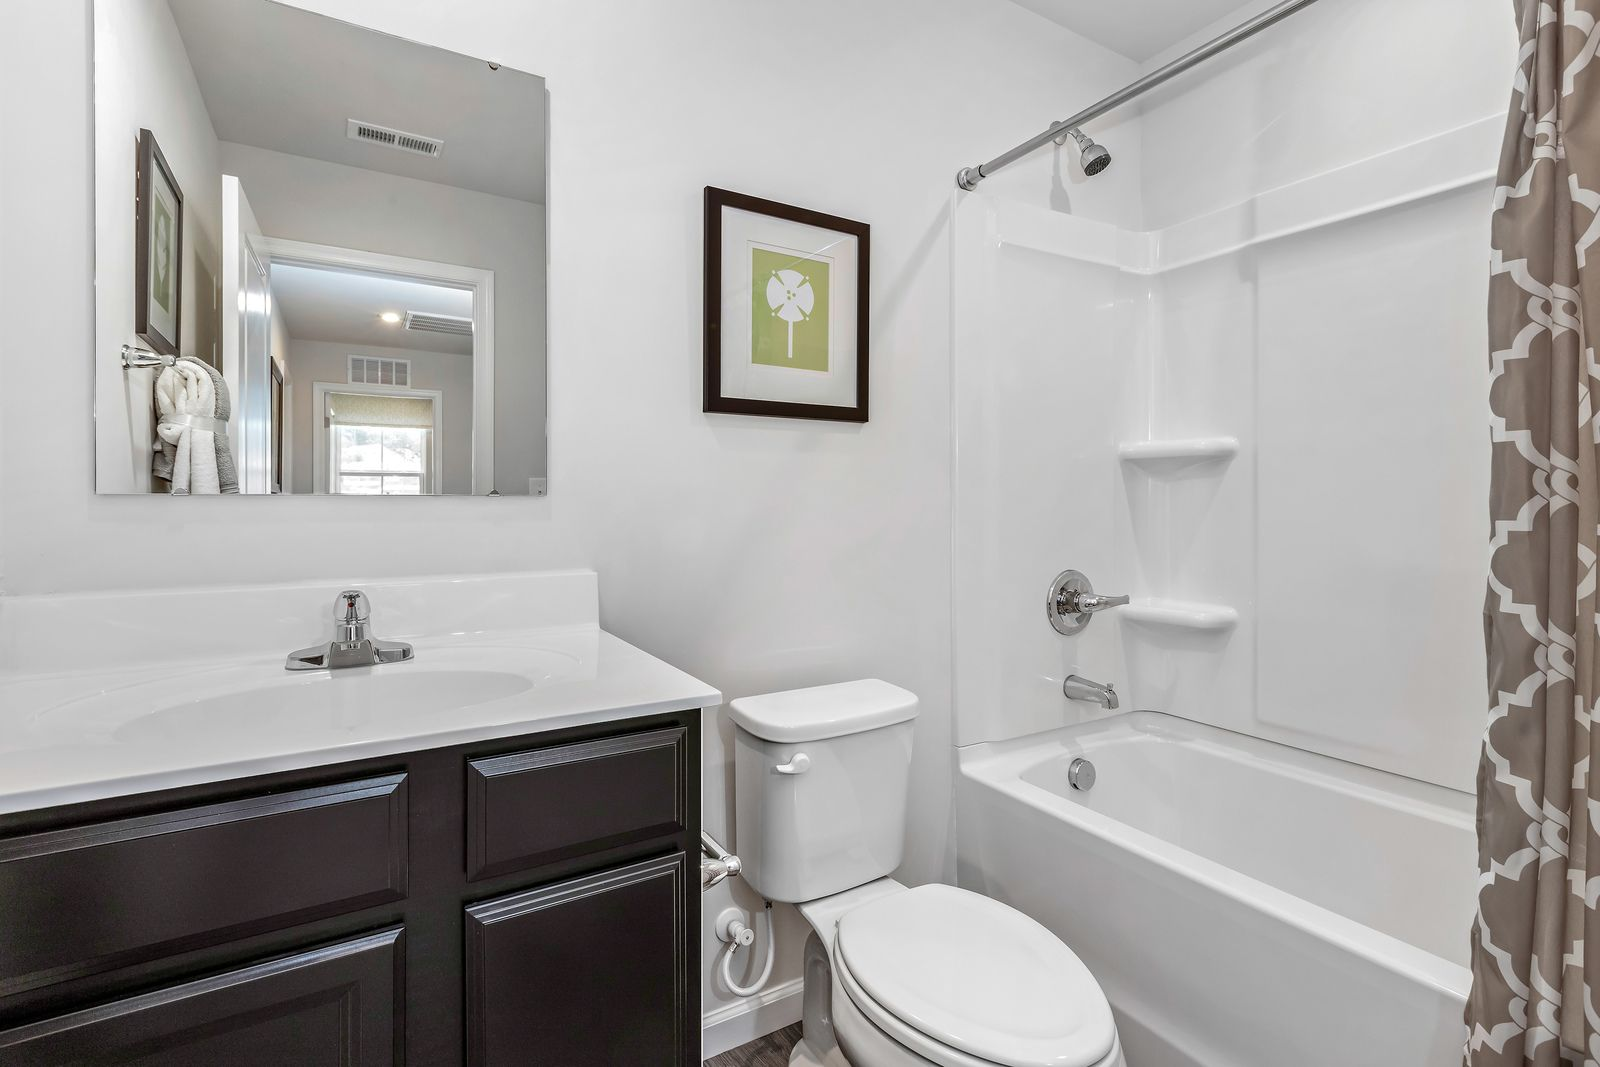 Bathroom featured in the Aspen By Ryan Homes in Akron, OH